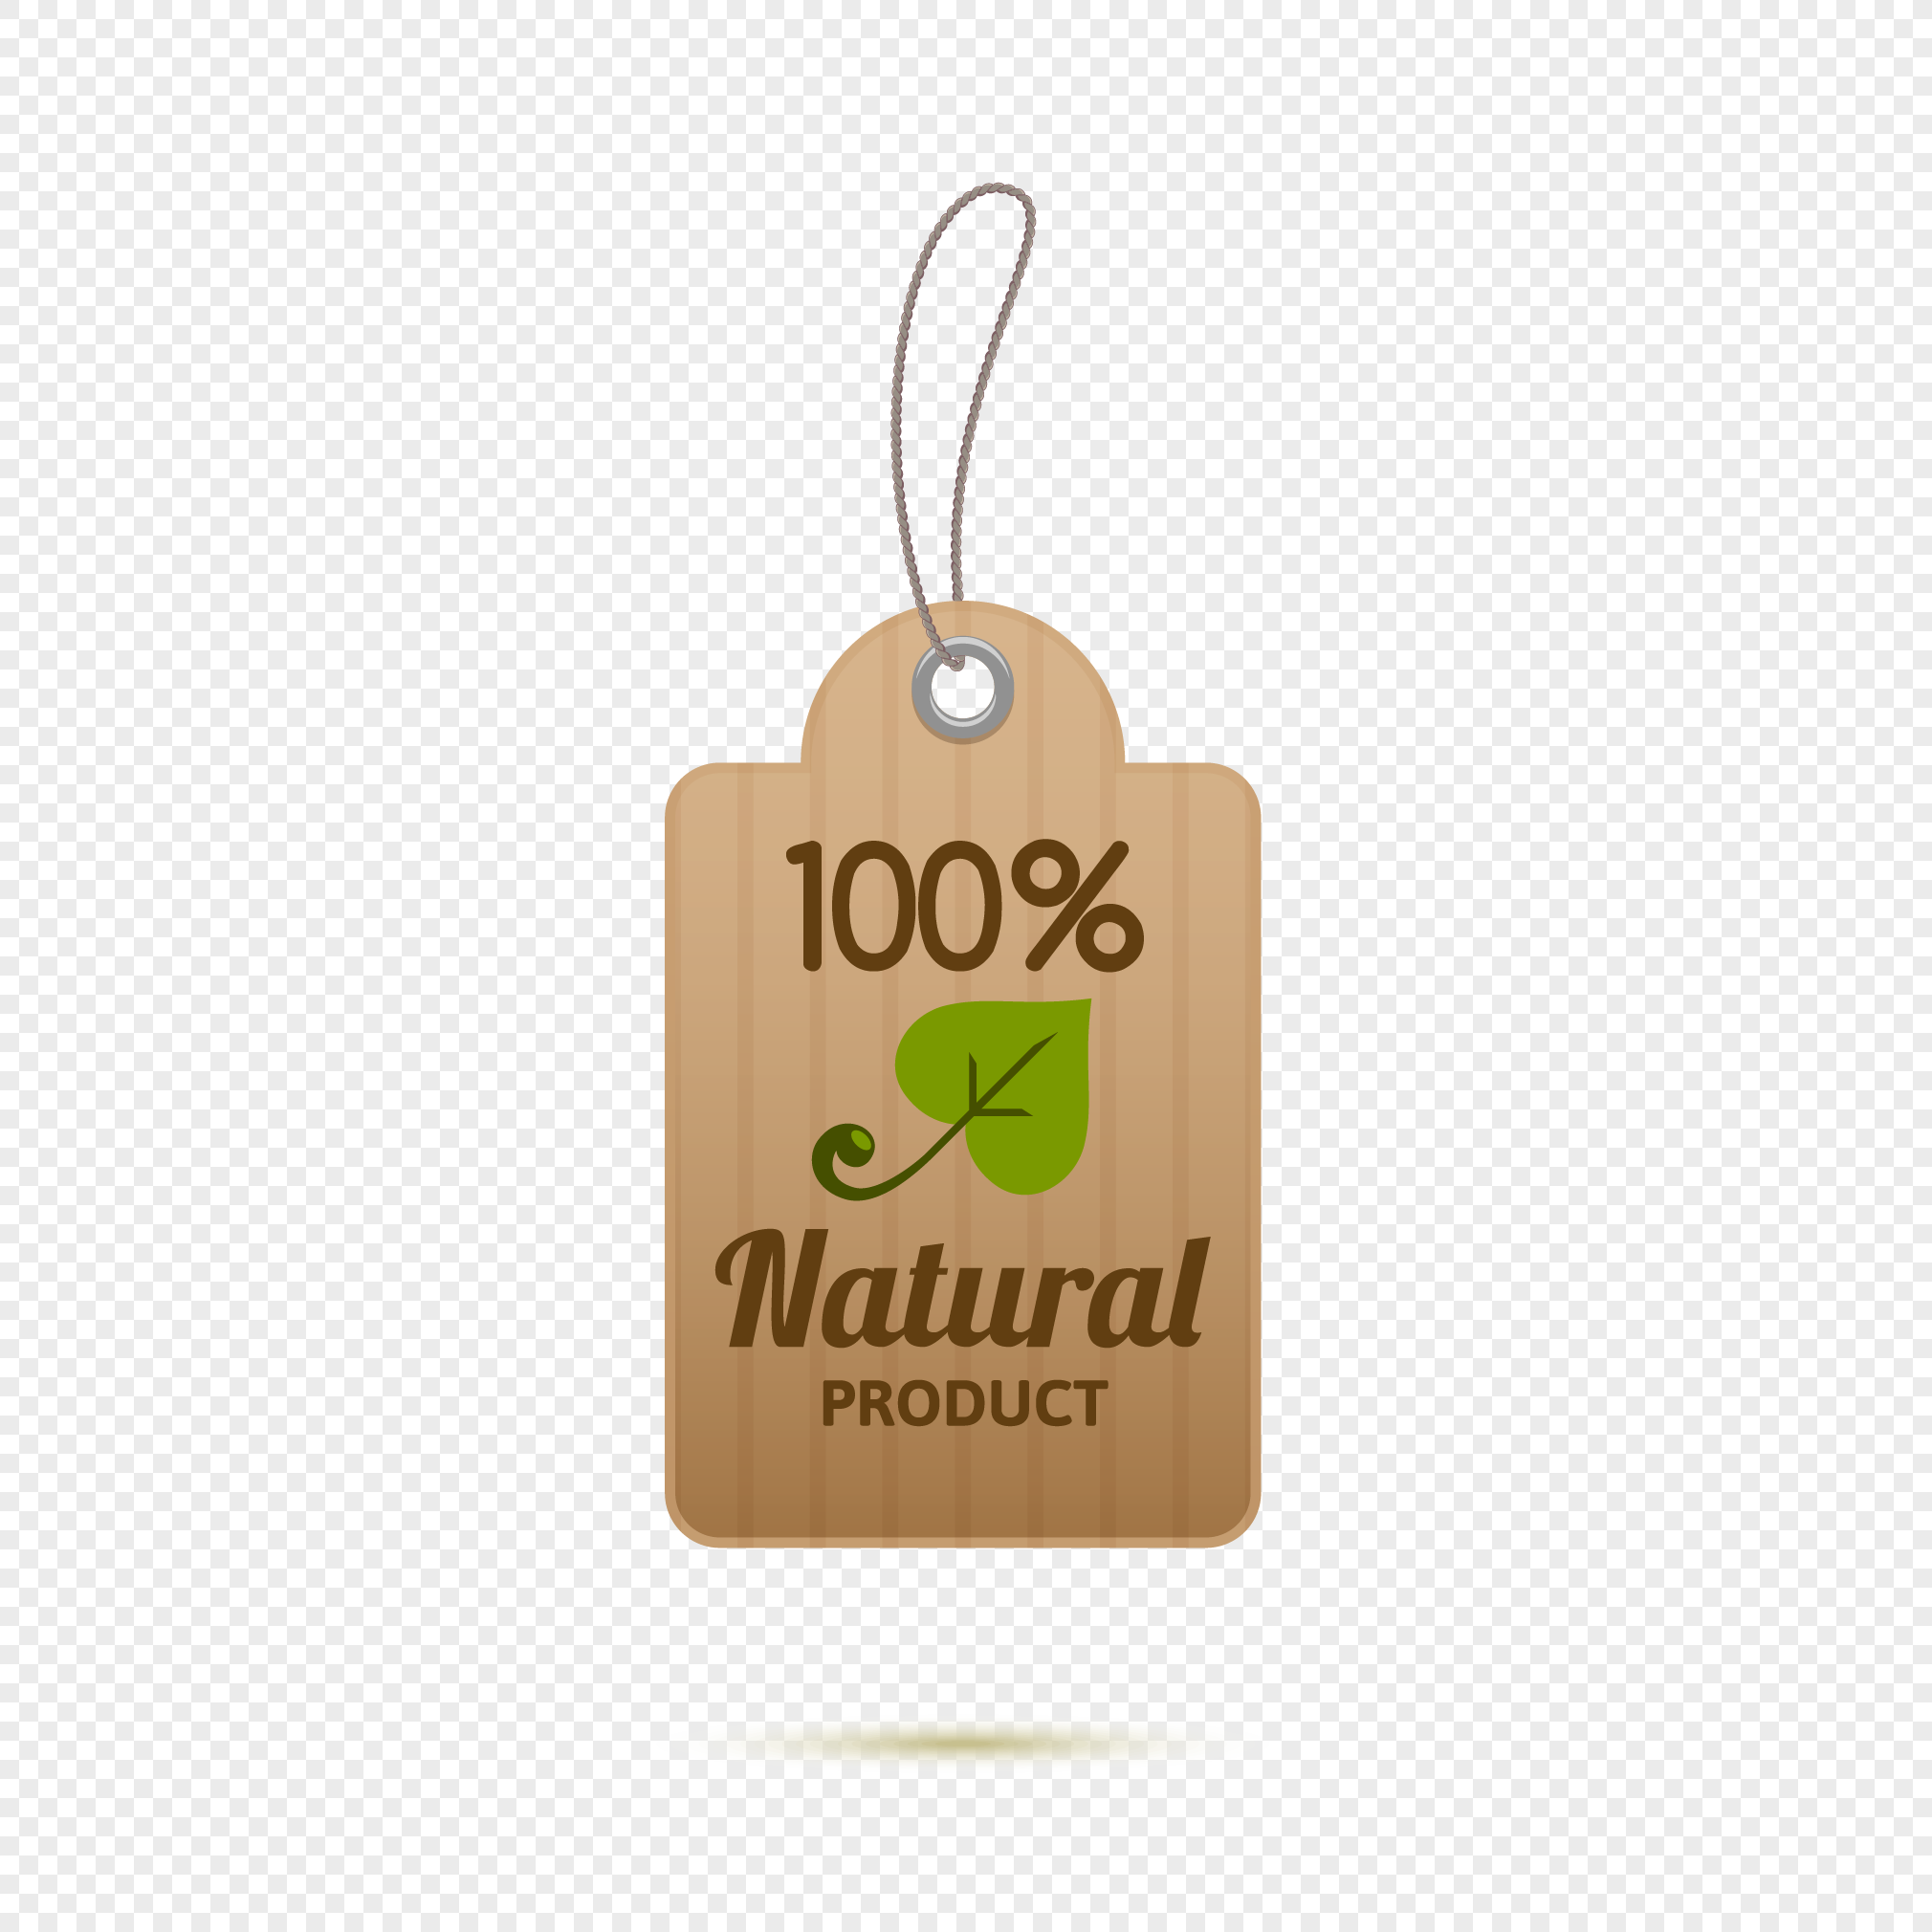 kraft paper label vector png image_picture free download